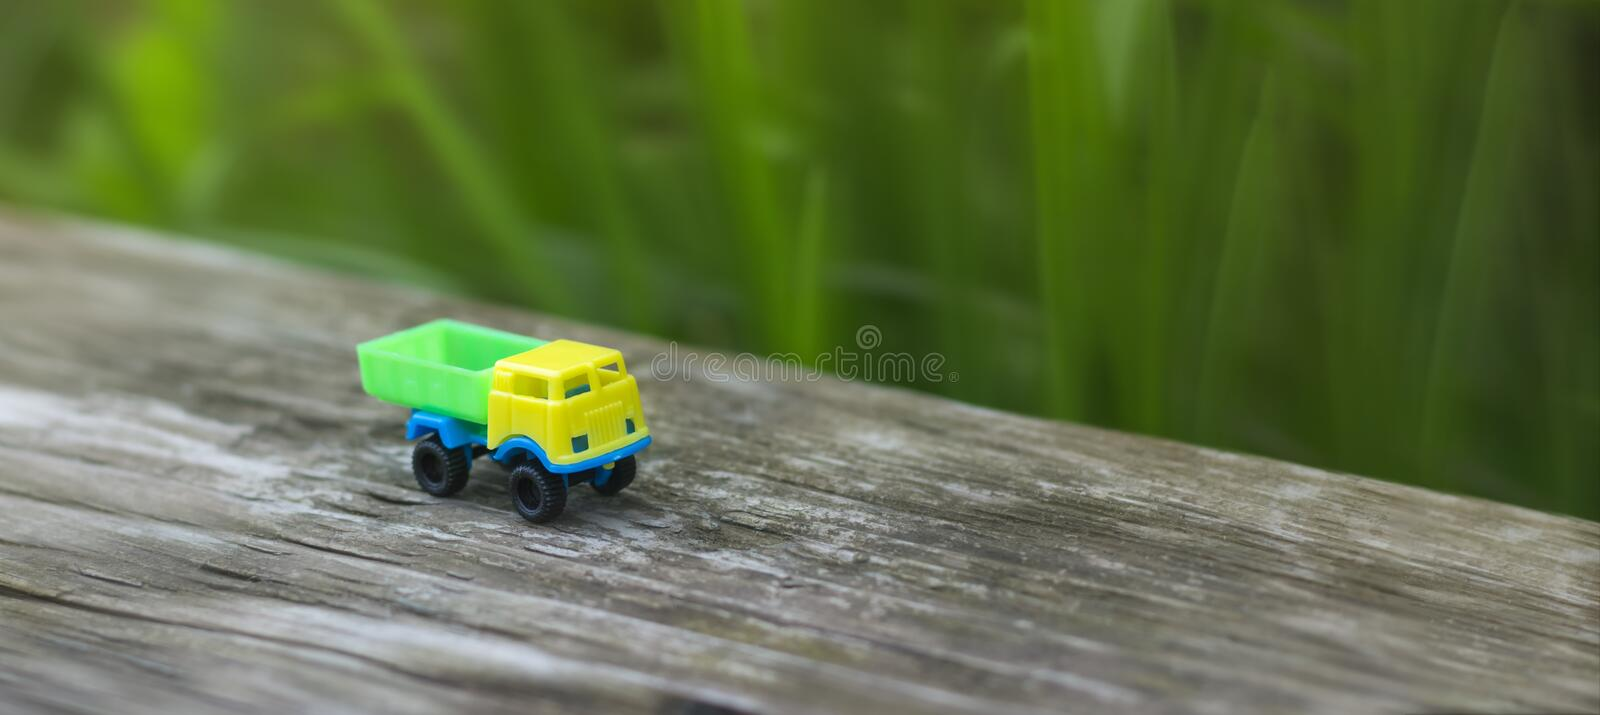 Toy truck with yellow cab and green body on wooden background with copy space stock images